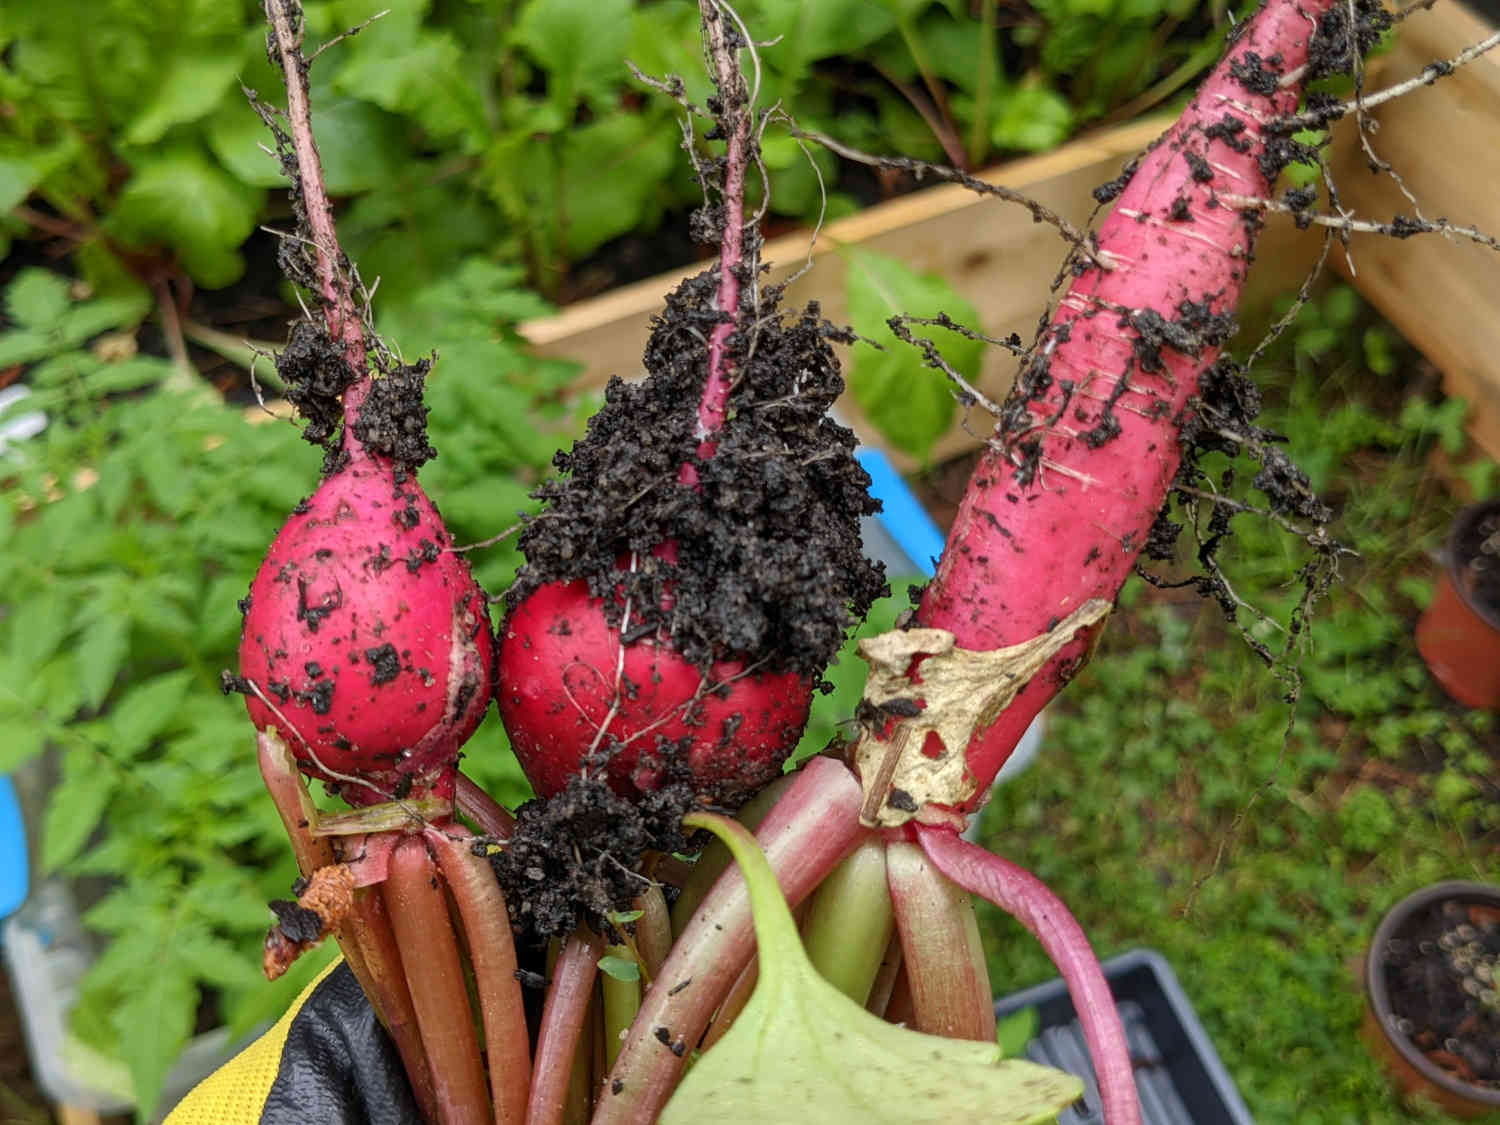 Radishes Fresh Out of Dirt - Paint Covered Overalls - Durham North Carolina